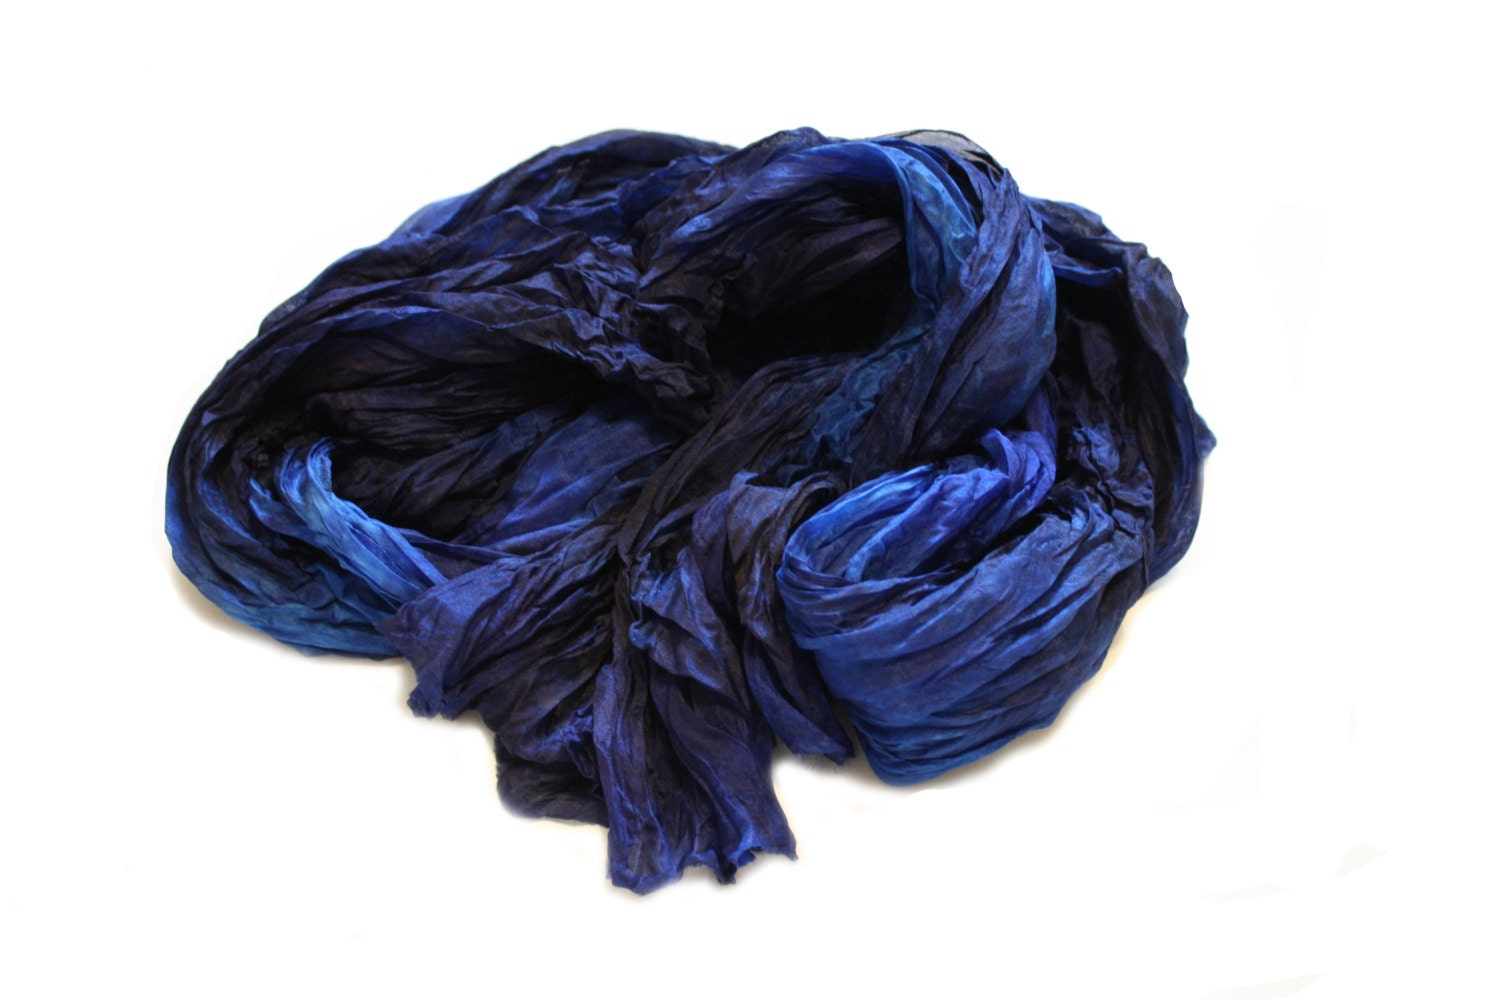 Mekong Blue Scarves are individually hand-woven from % pure silk, dyed in an array of rich, bold colors. The collection features 12 designs, from a solid hue .